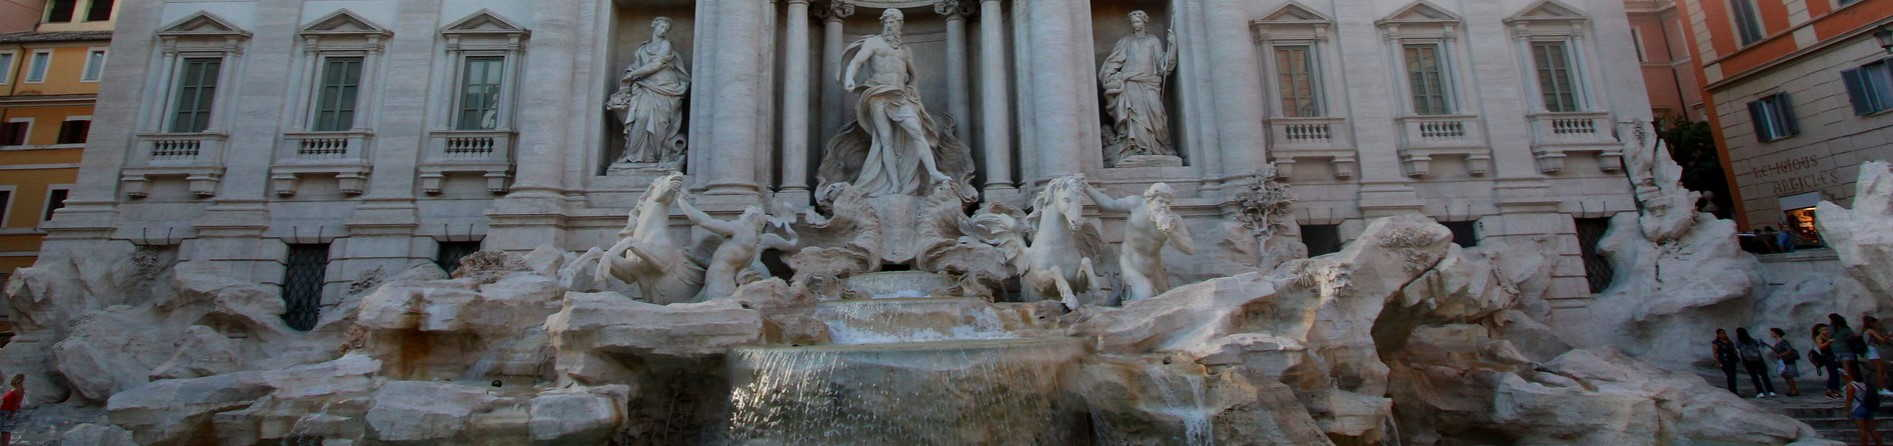 What is special about the Trevi Fountain?